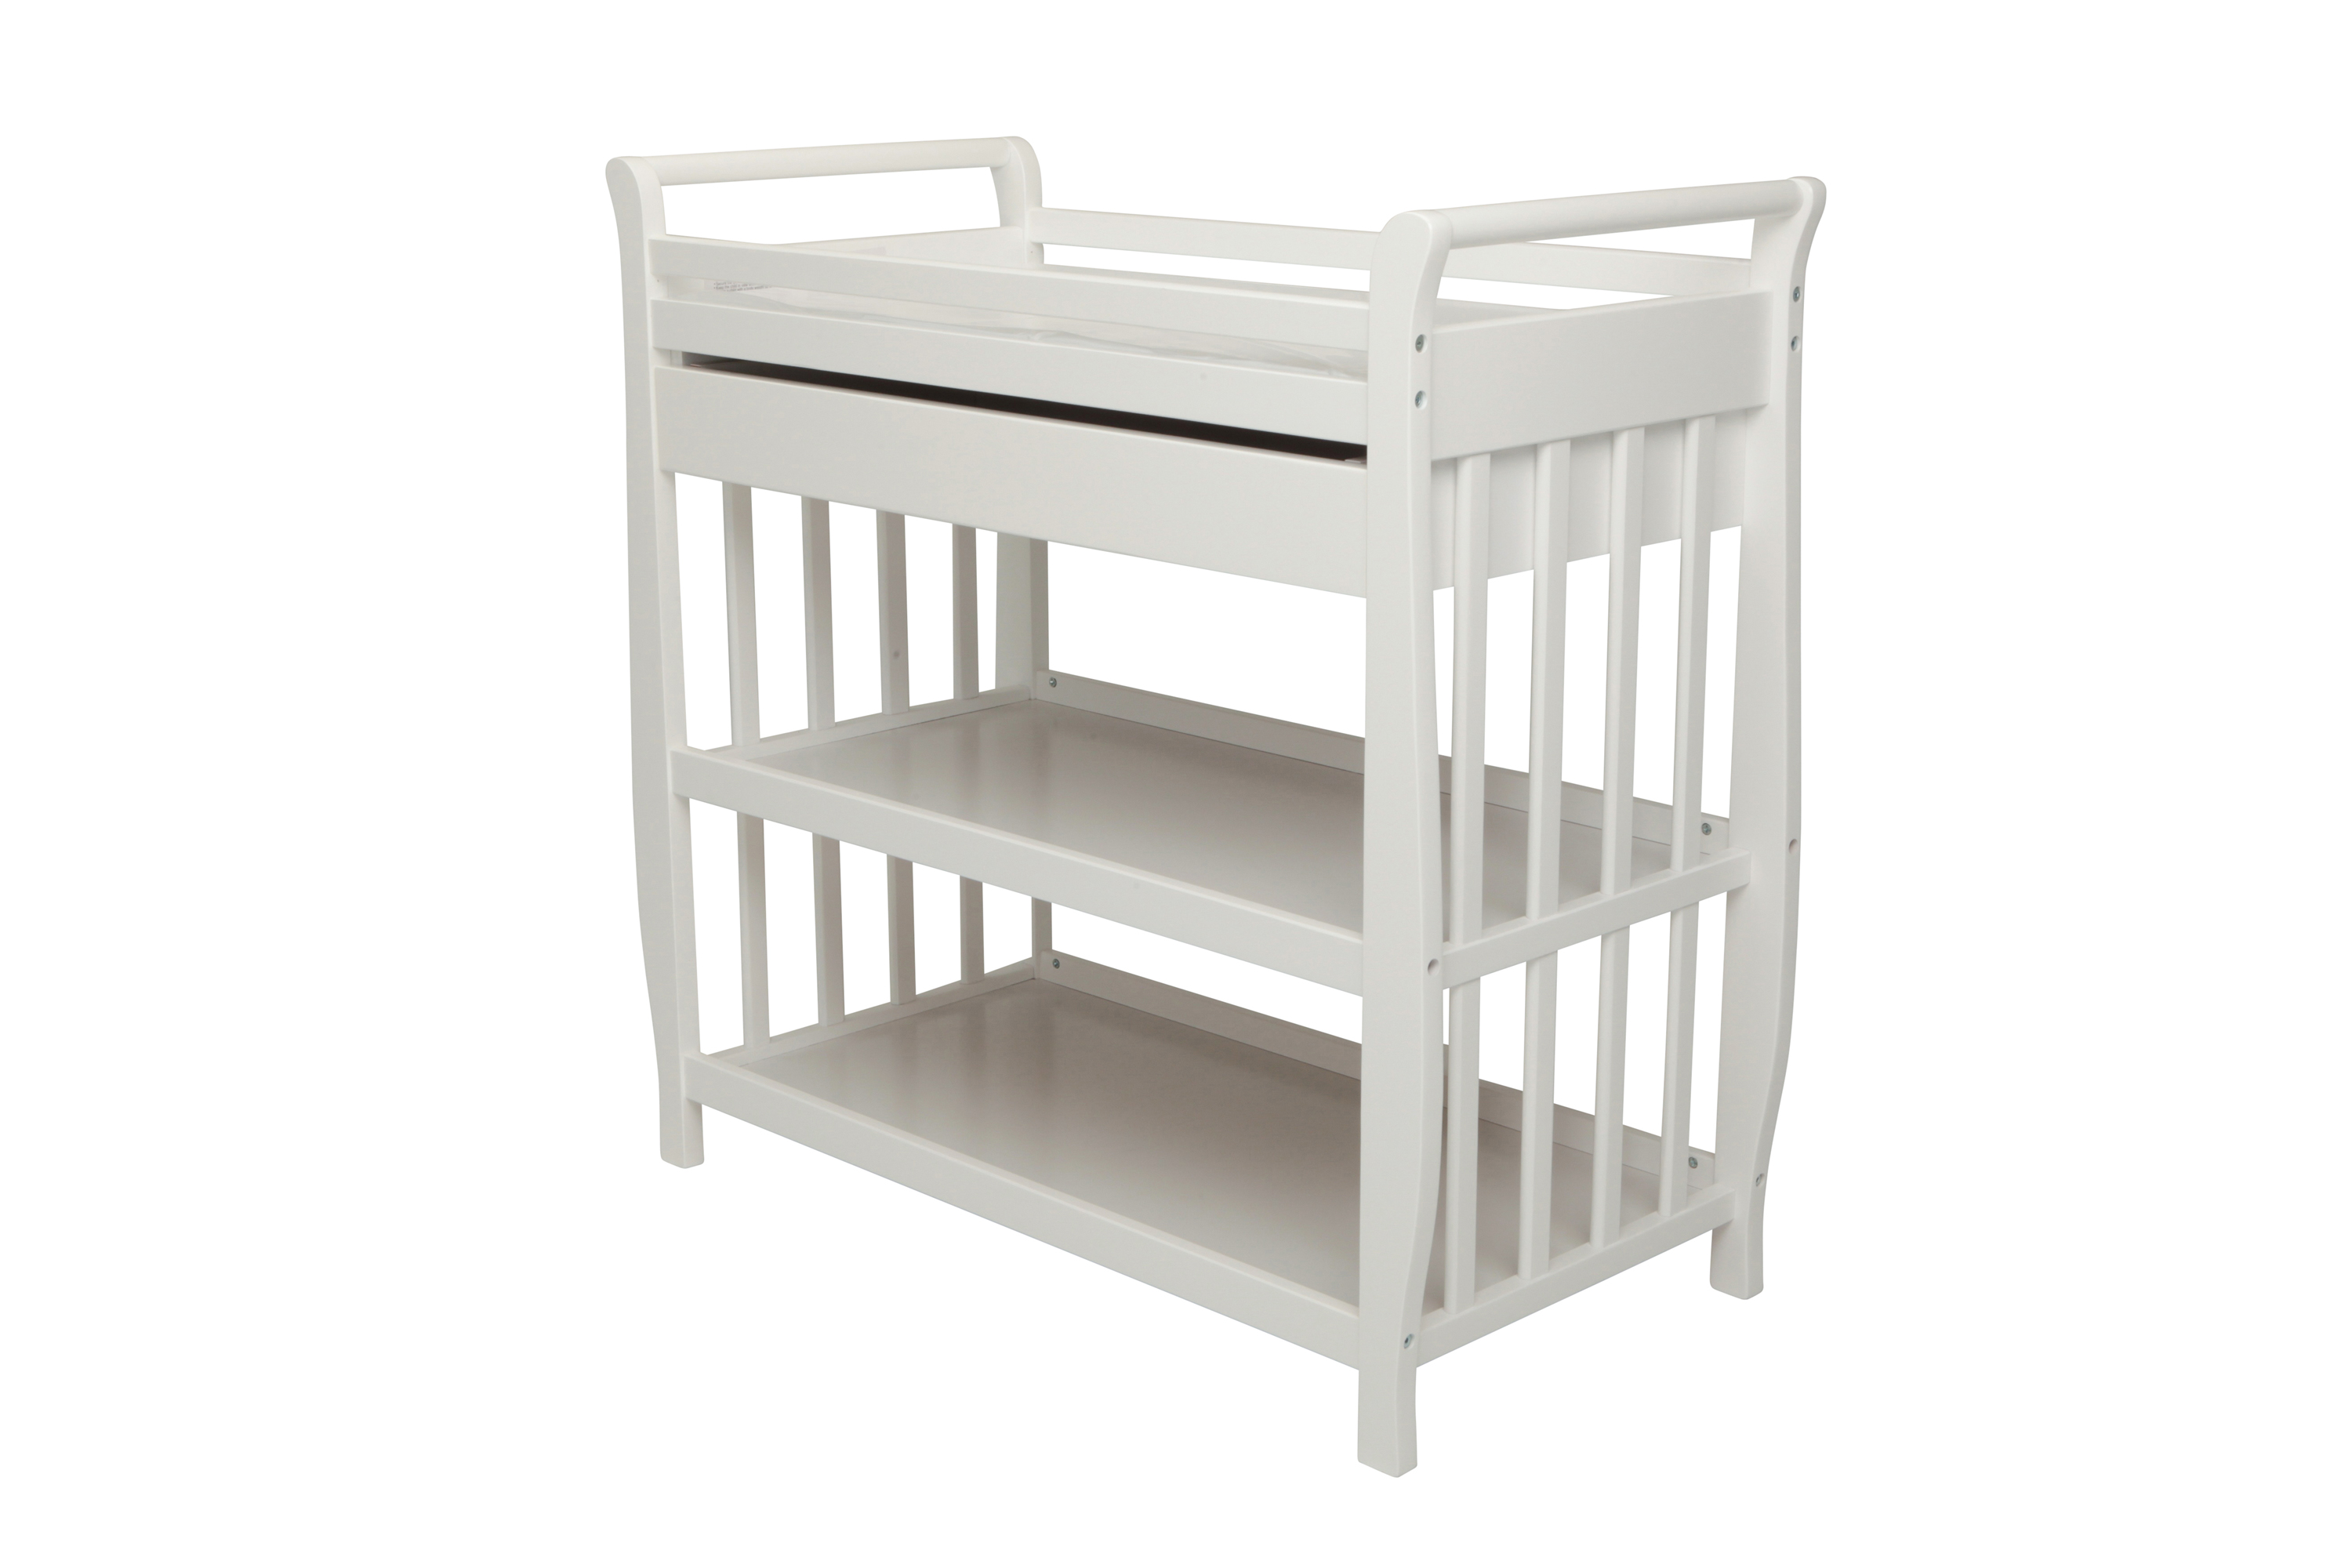 AFG Athena Nadia Changing Table - White - 3353W